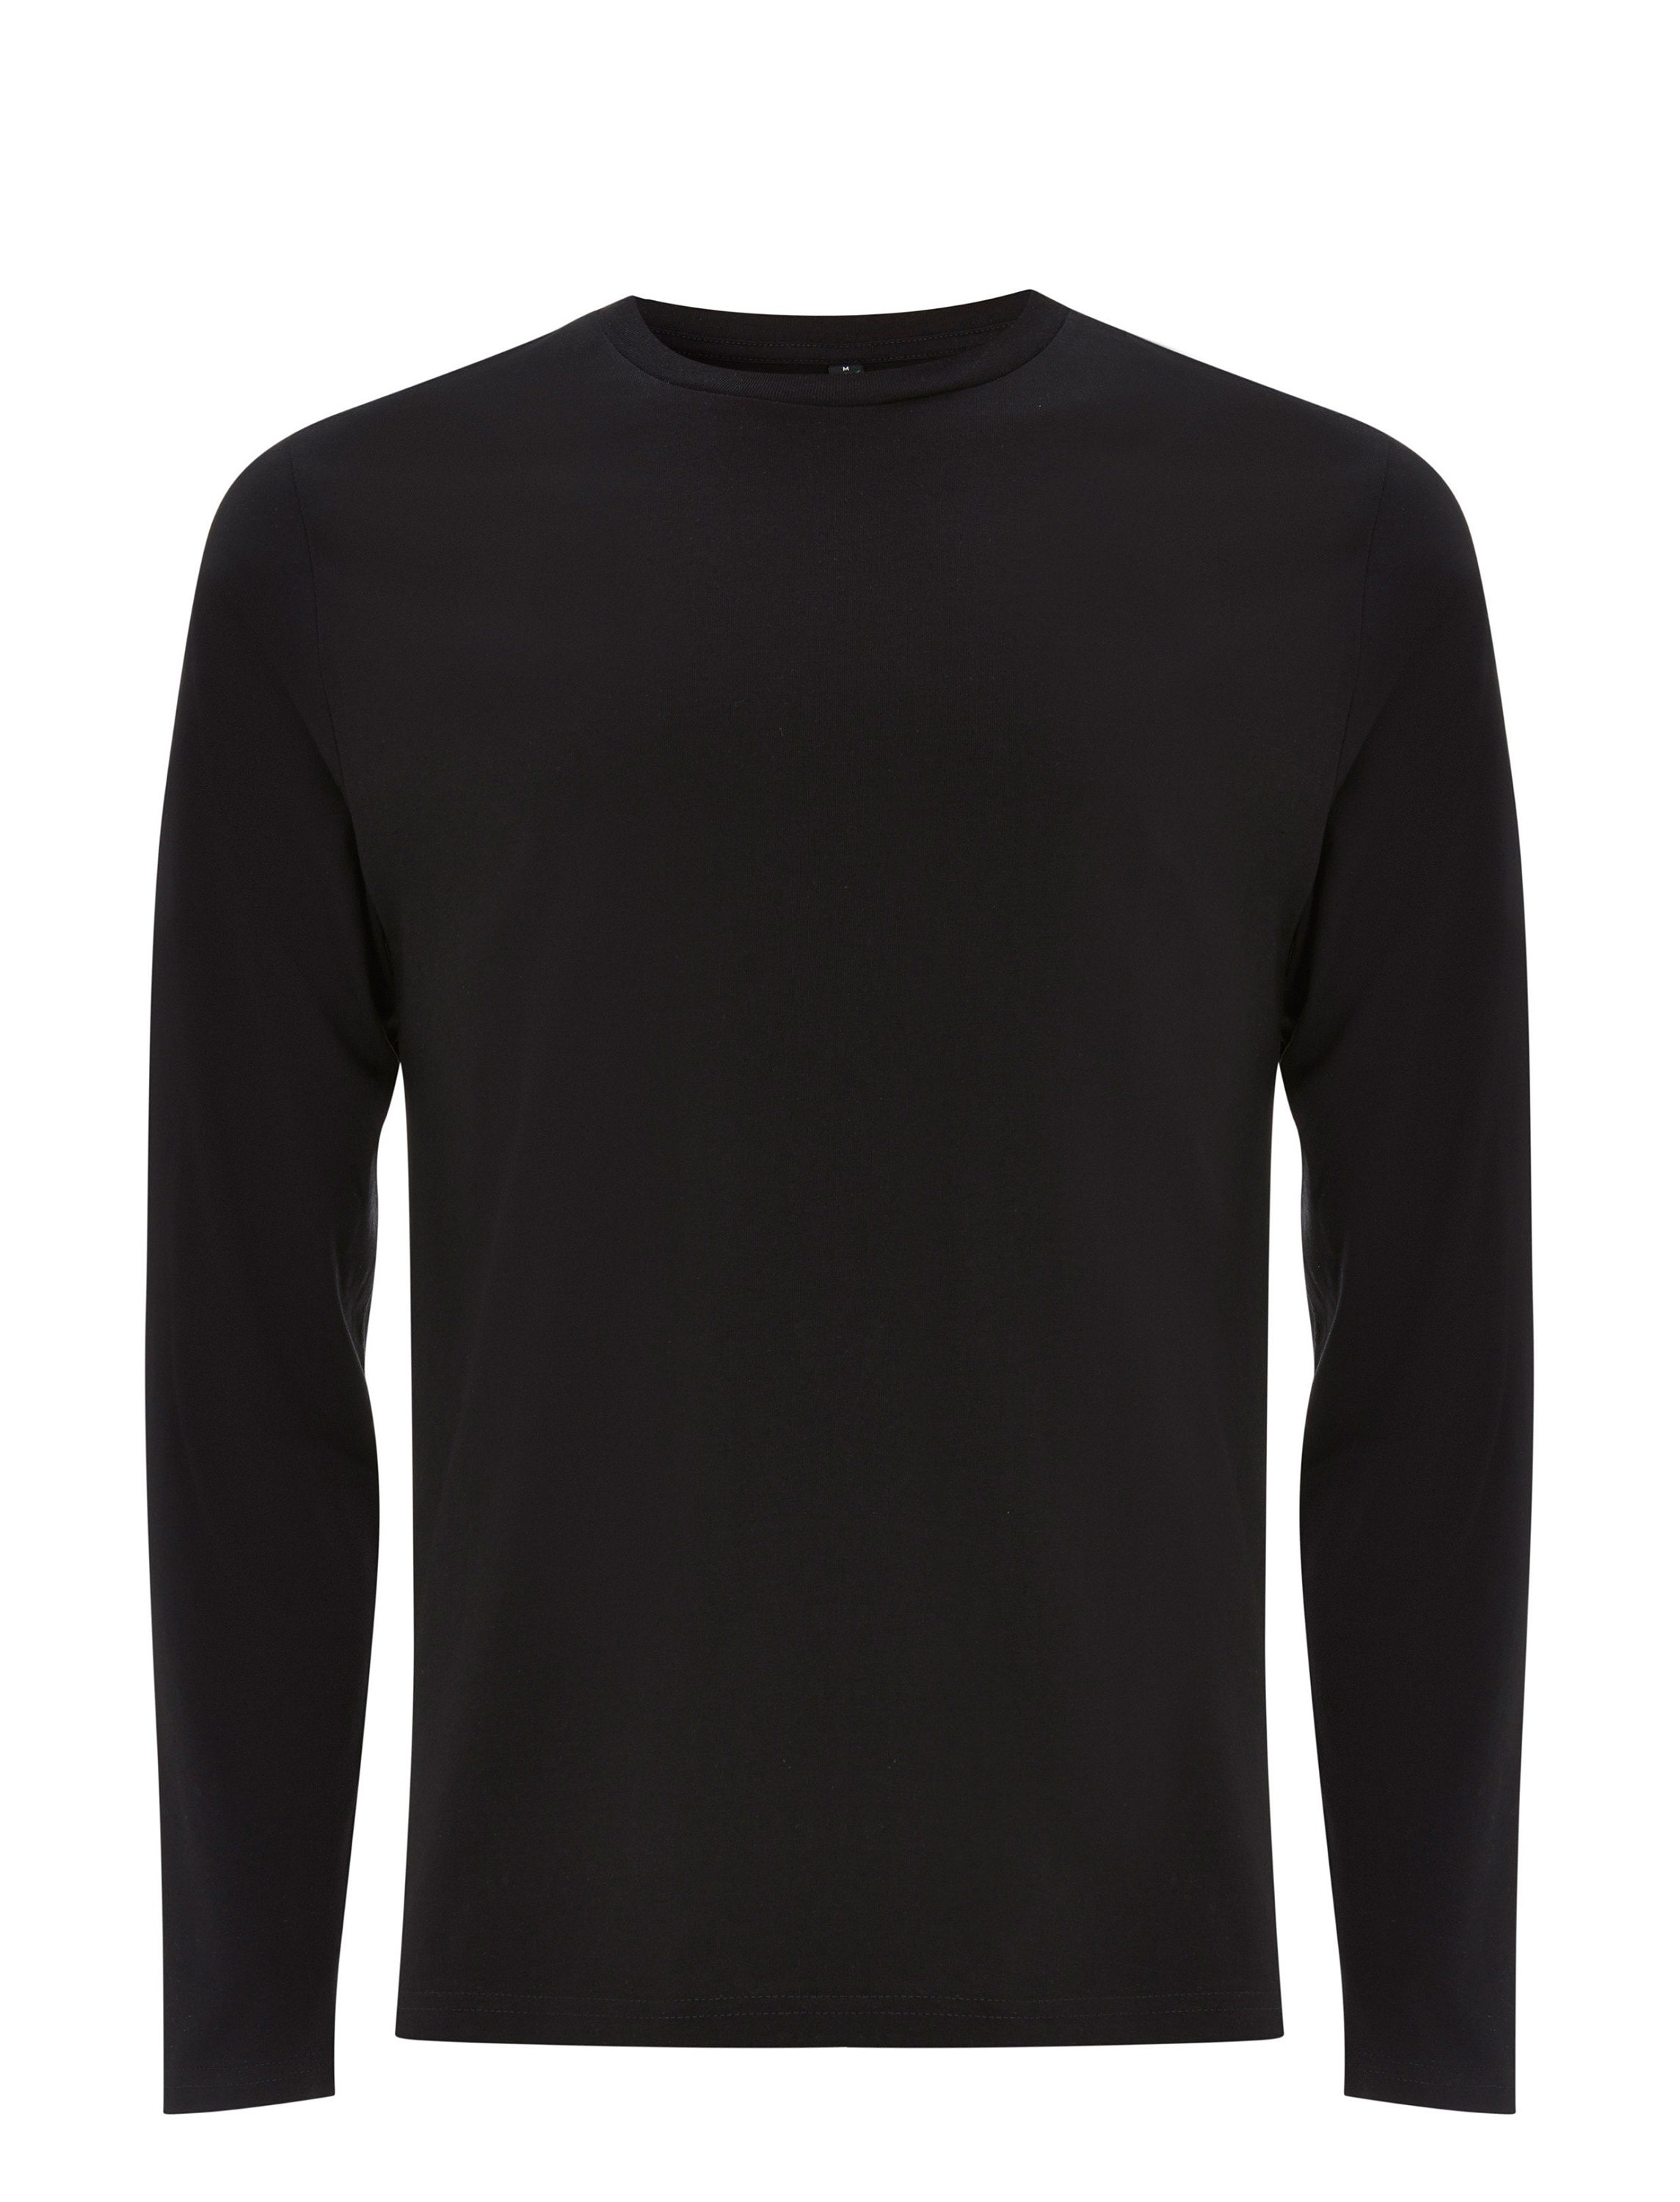 Continental Clothing Long Sleeve T-Shirt